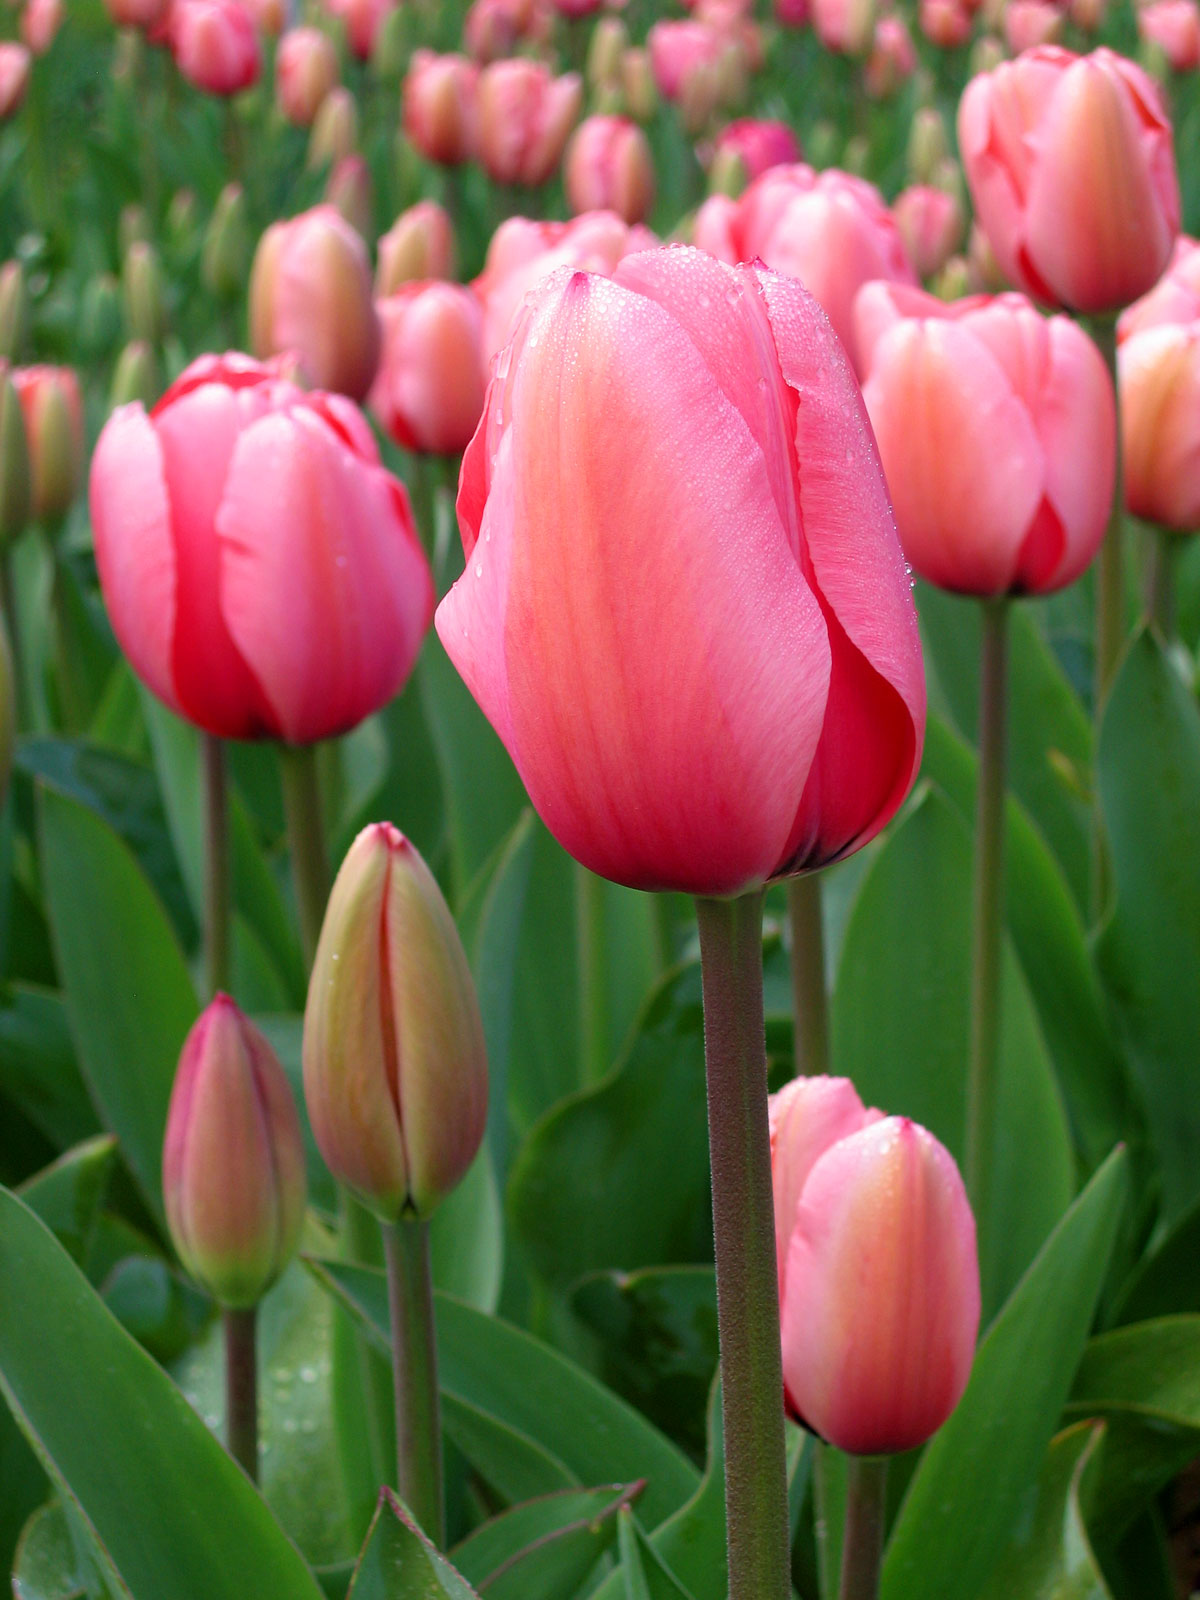 Photos of tulip flowers freeuse download Tulip - Wikipedia freeuse download